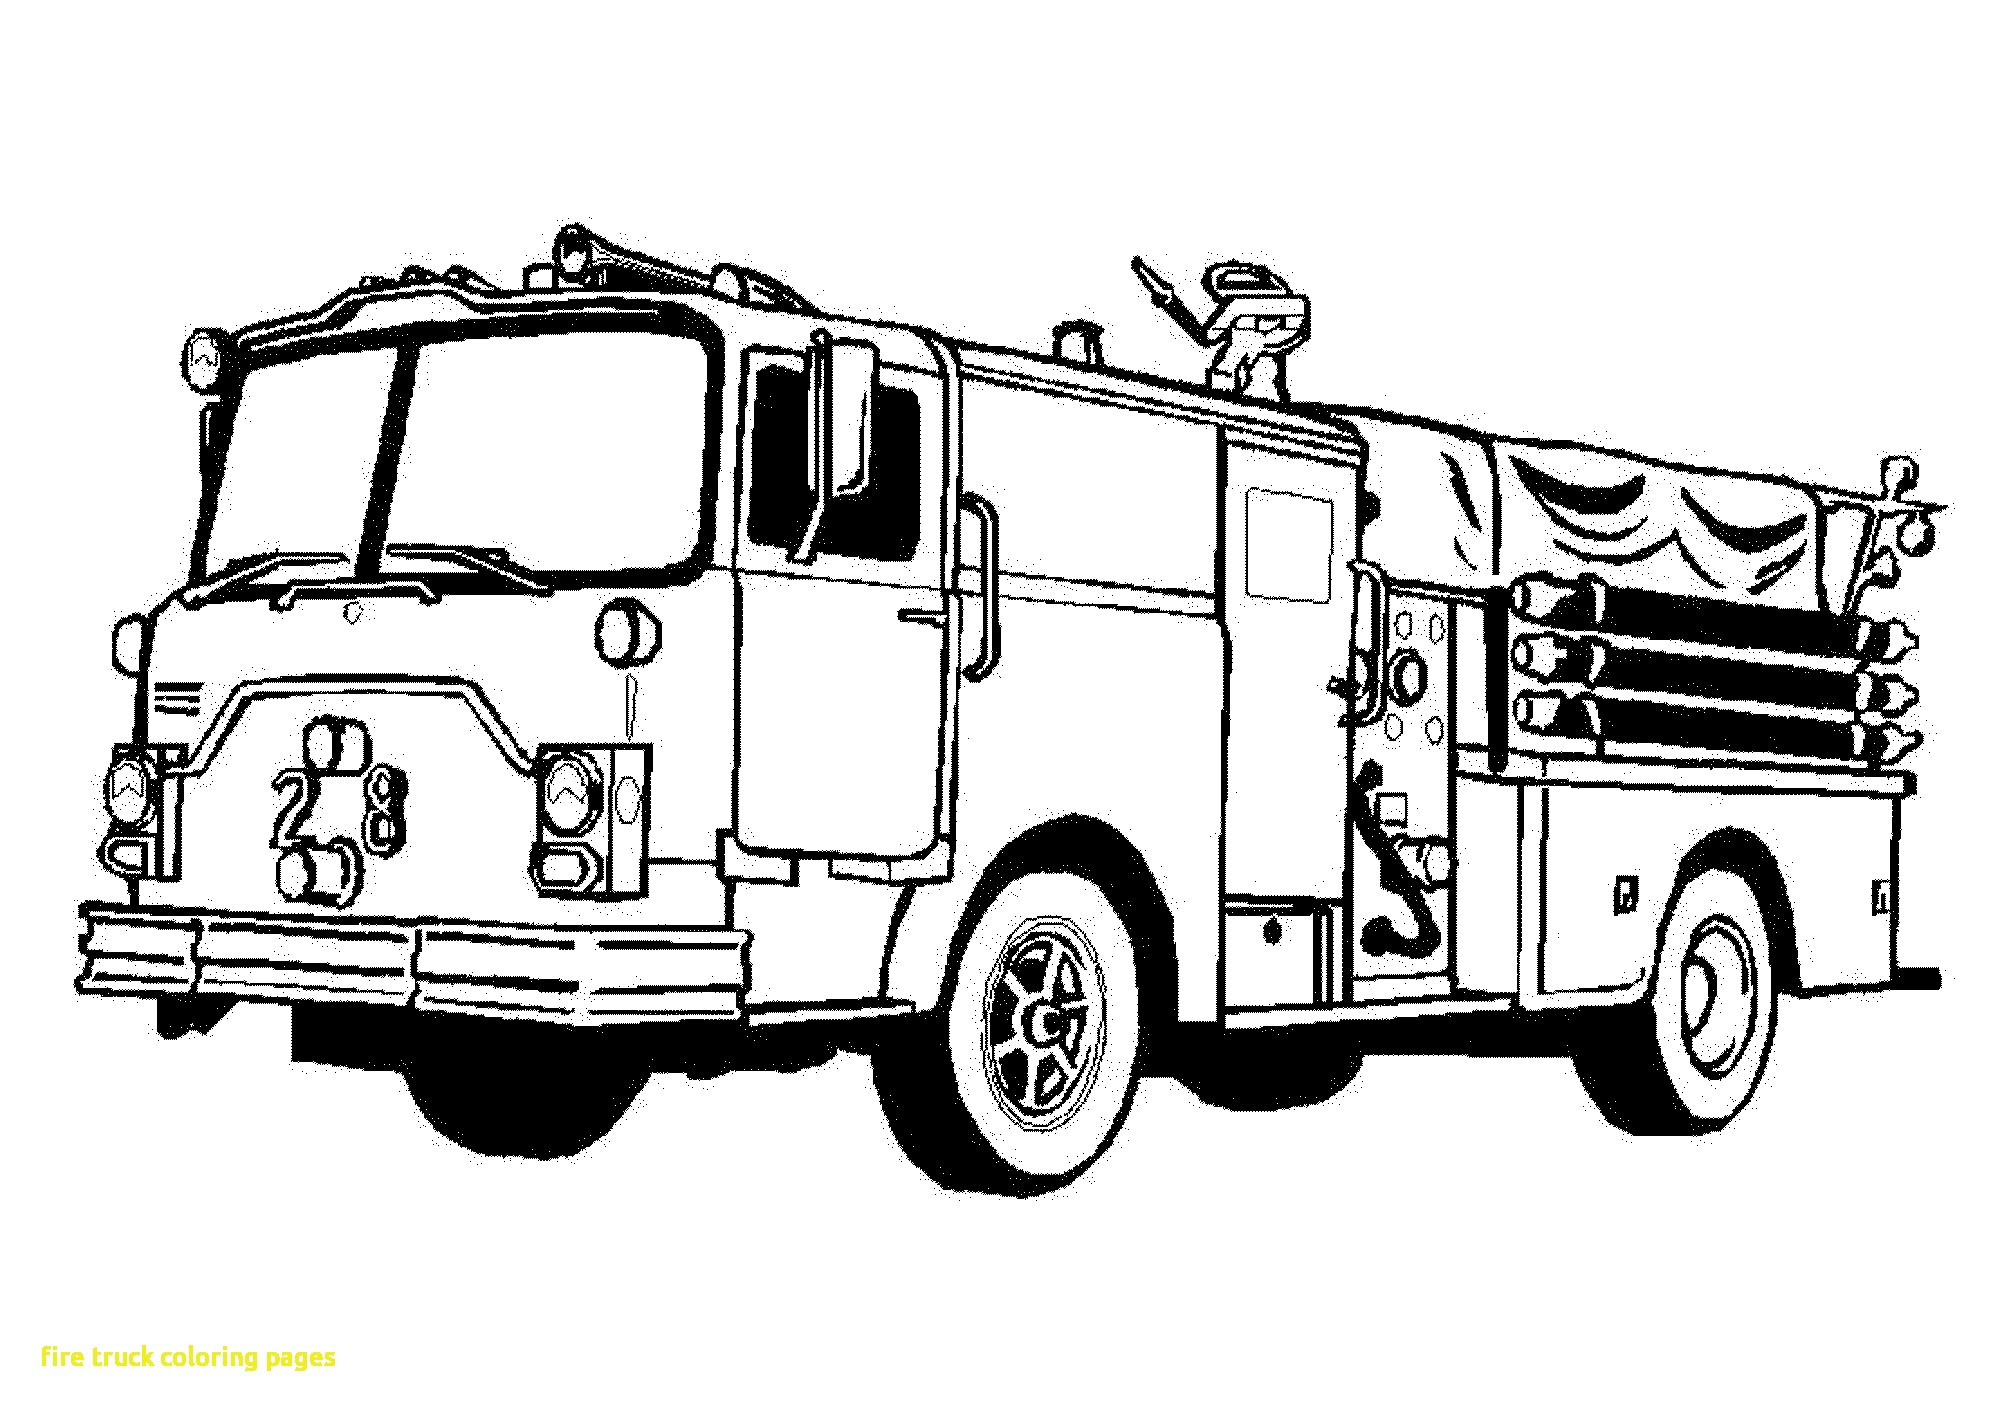 2000x1414 Fire Truck Coloring Pages With Free Printable Fire Truck Coloring